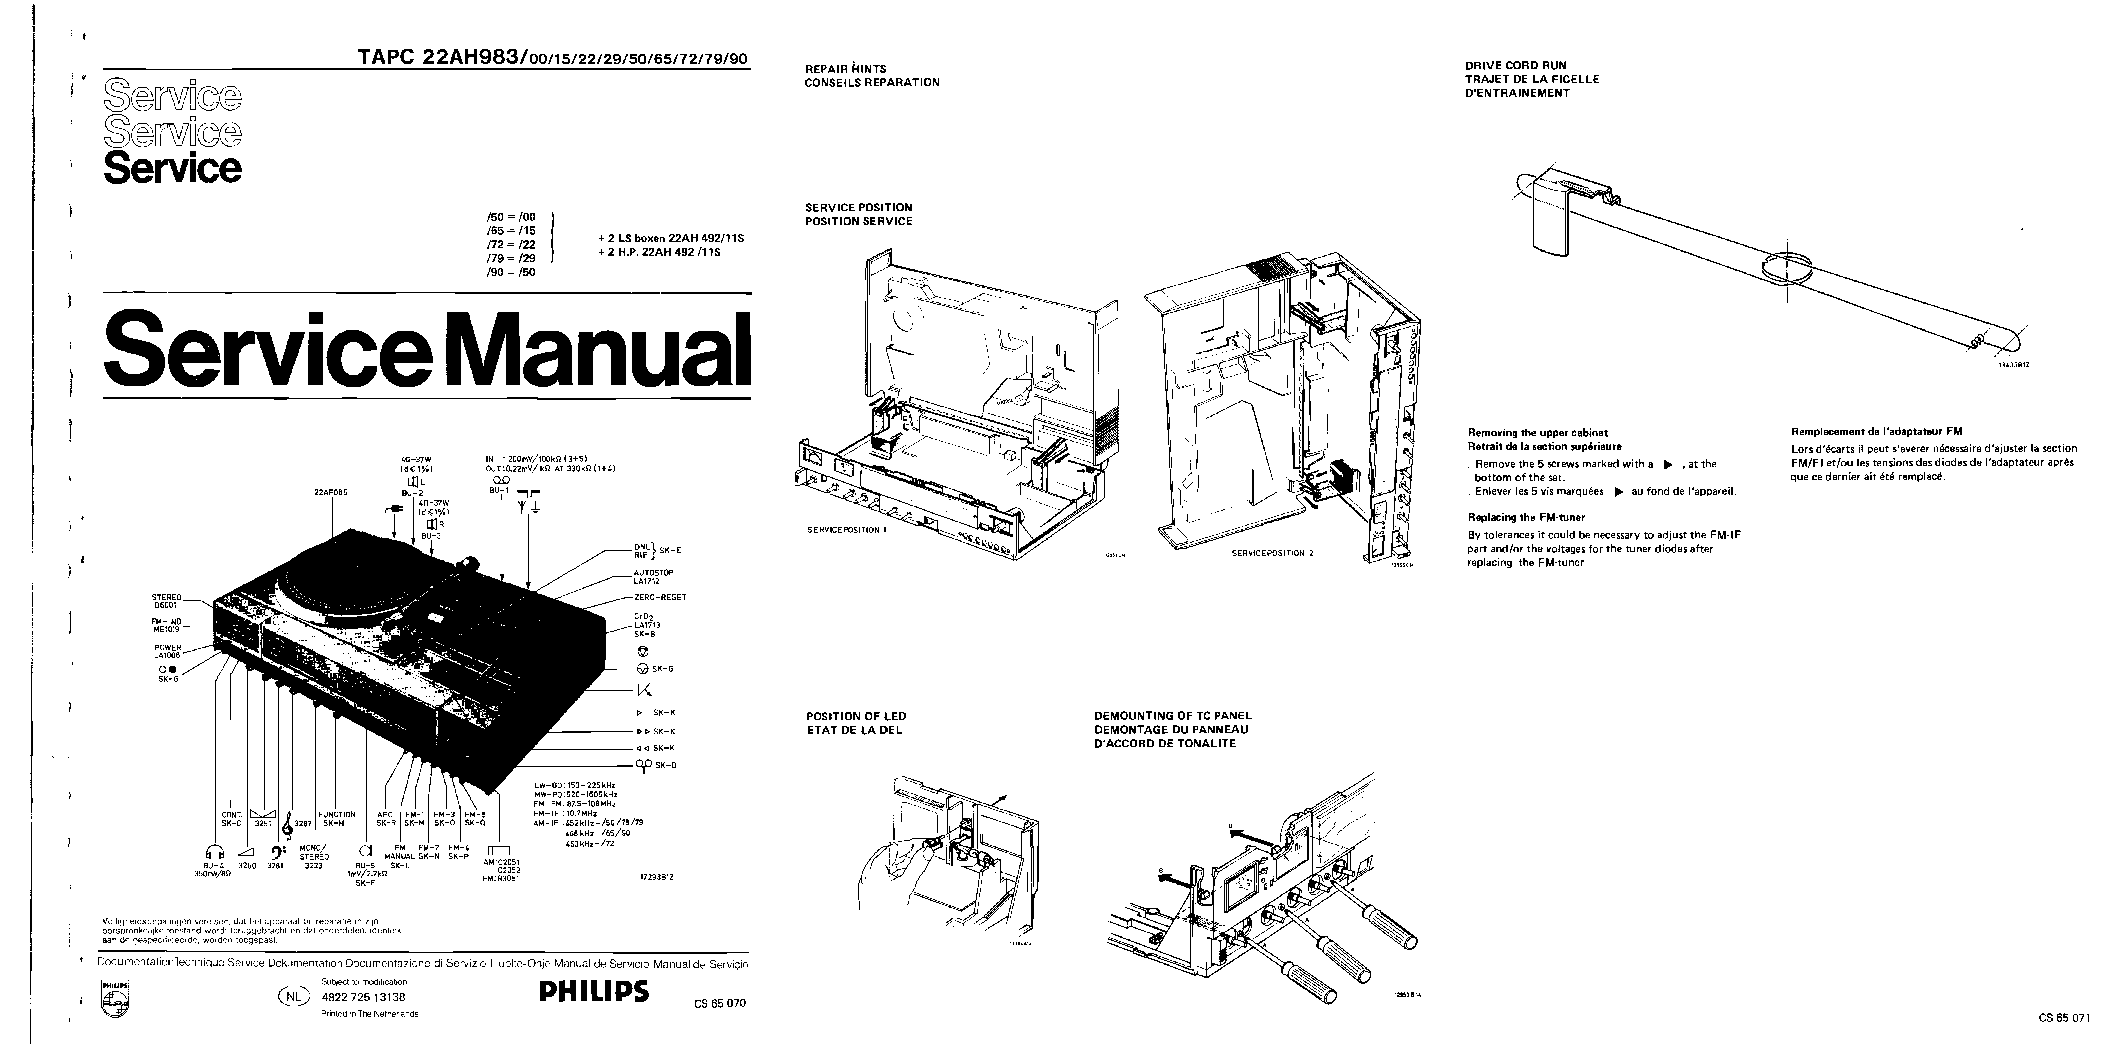 PHILIPS 206A VINTAGE RADIO SM Service Manual download